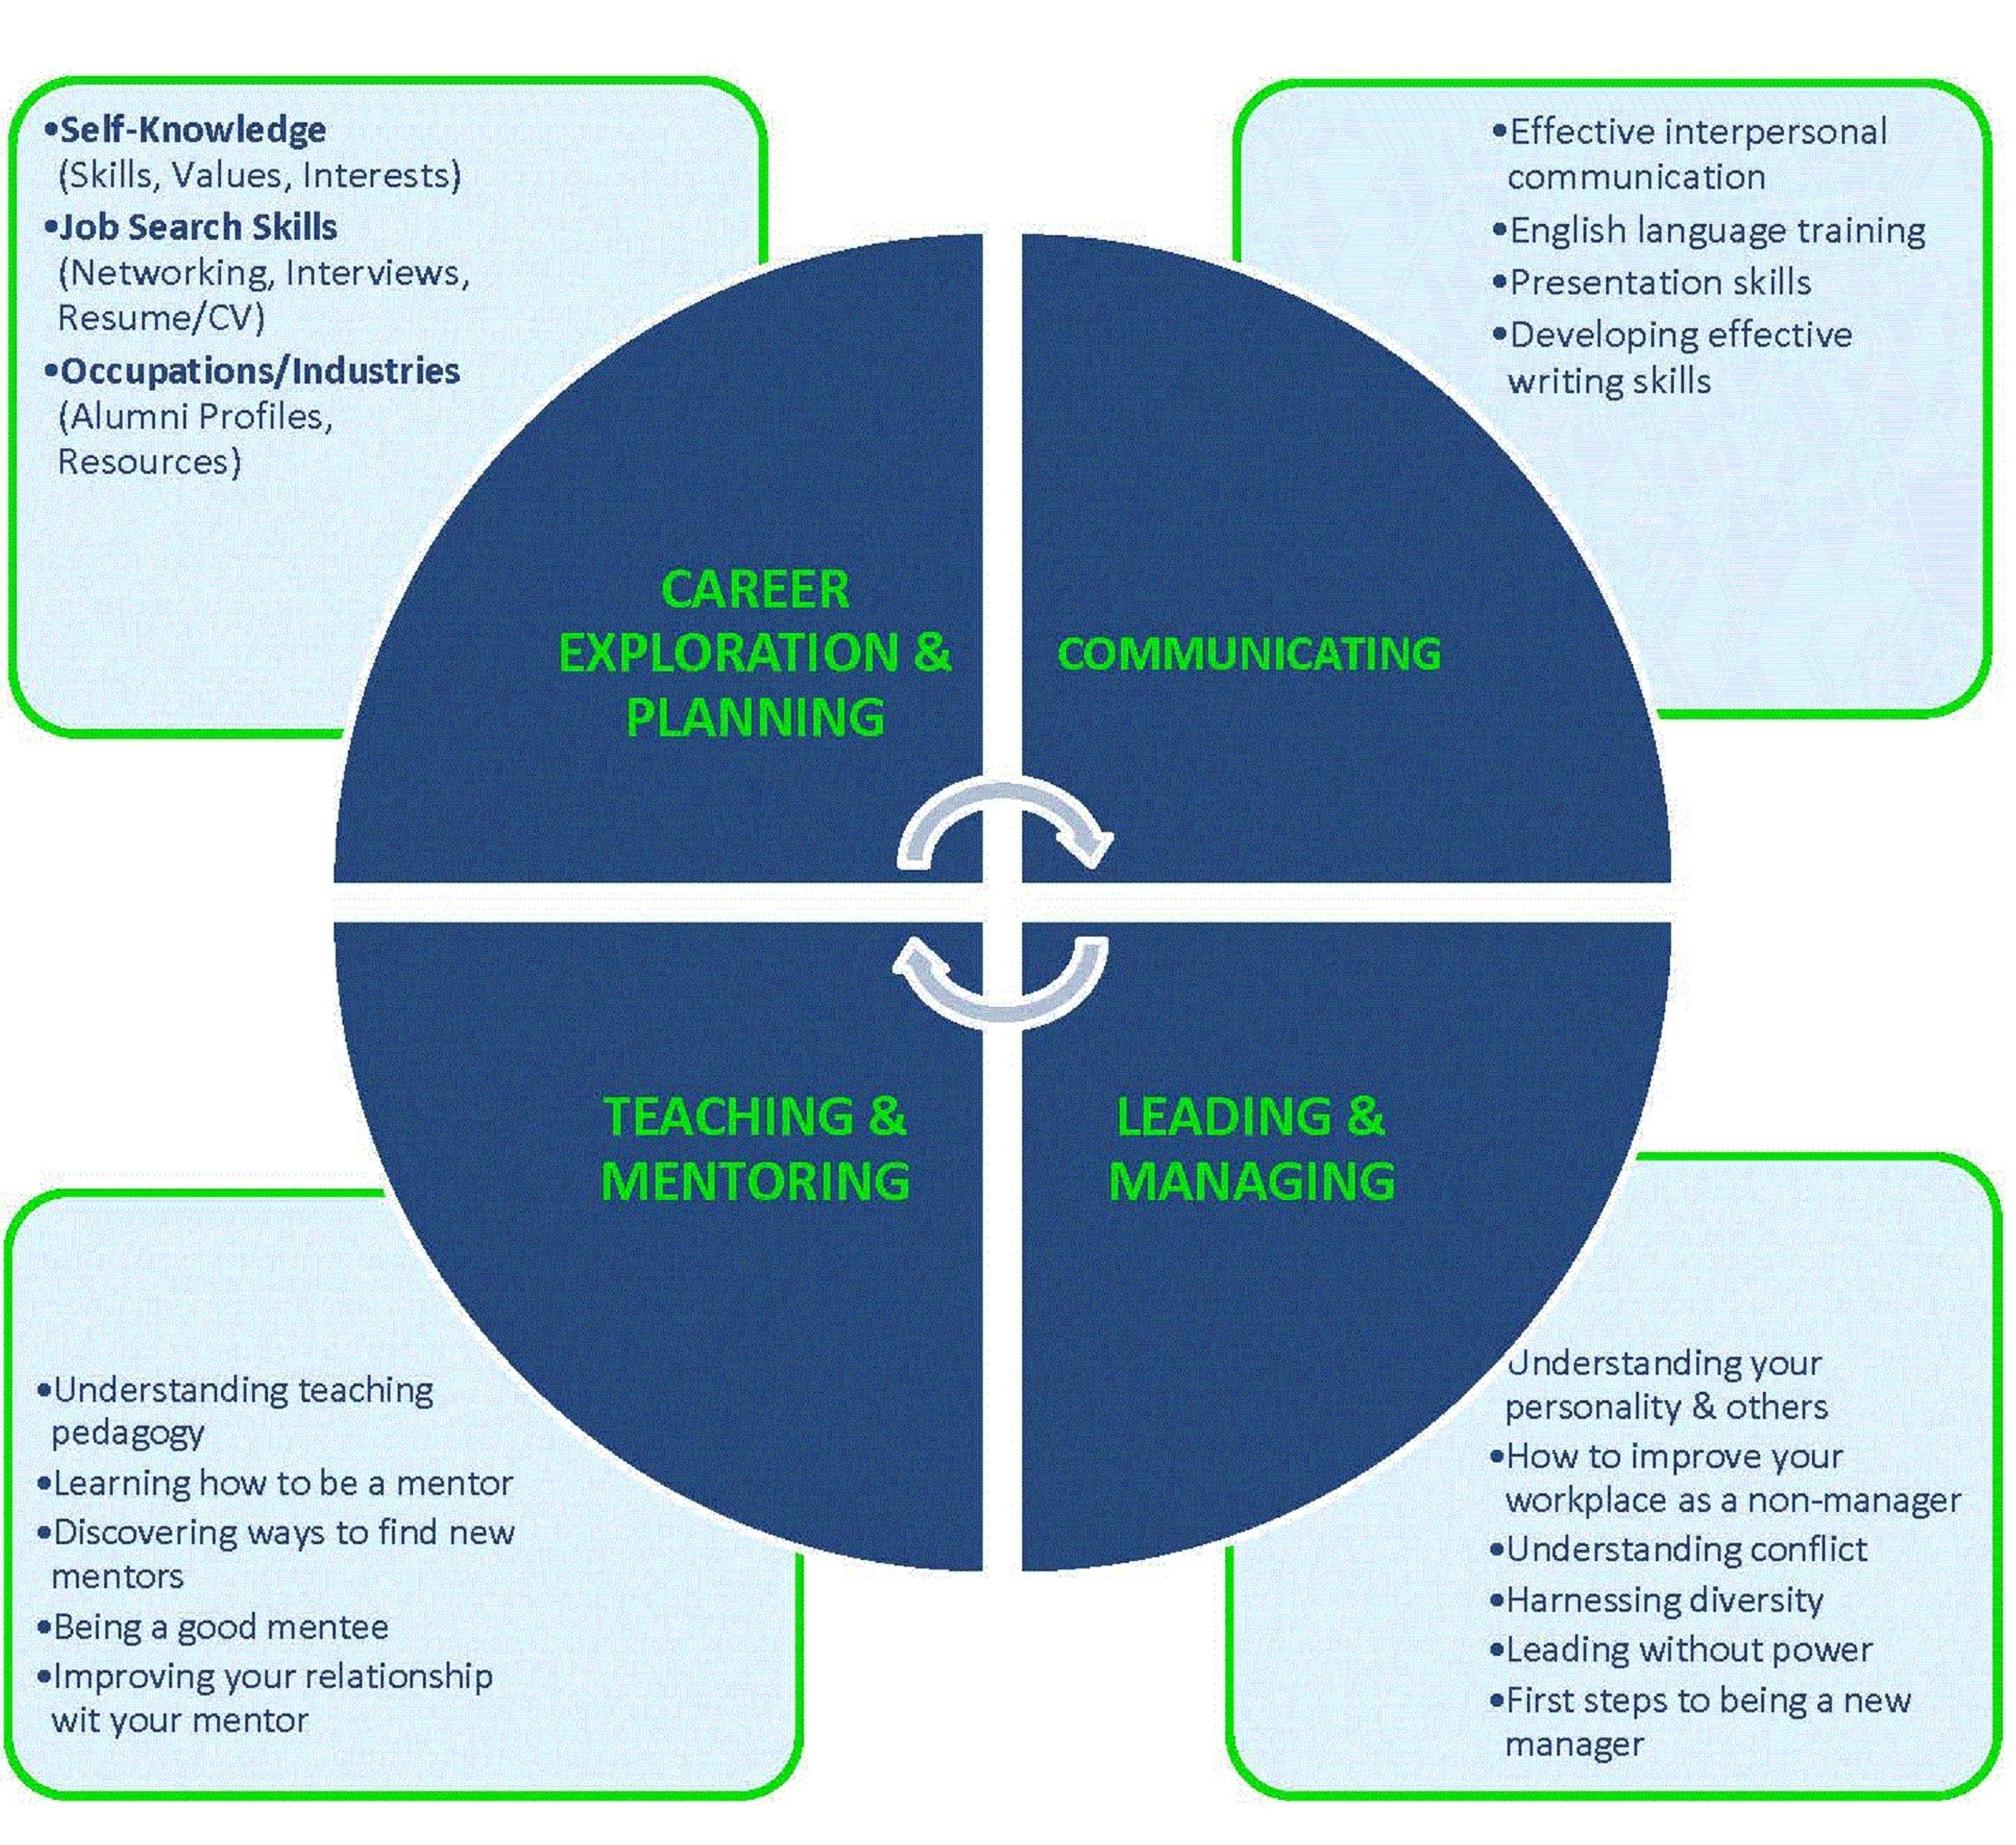 Diagram of four core competencies; including: Career Exploration & Planning, Communicating, Teaching & Mentoring and Leading & Managing